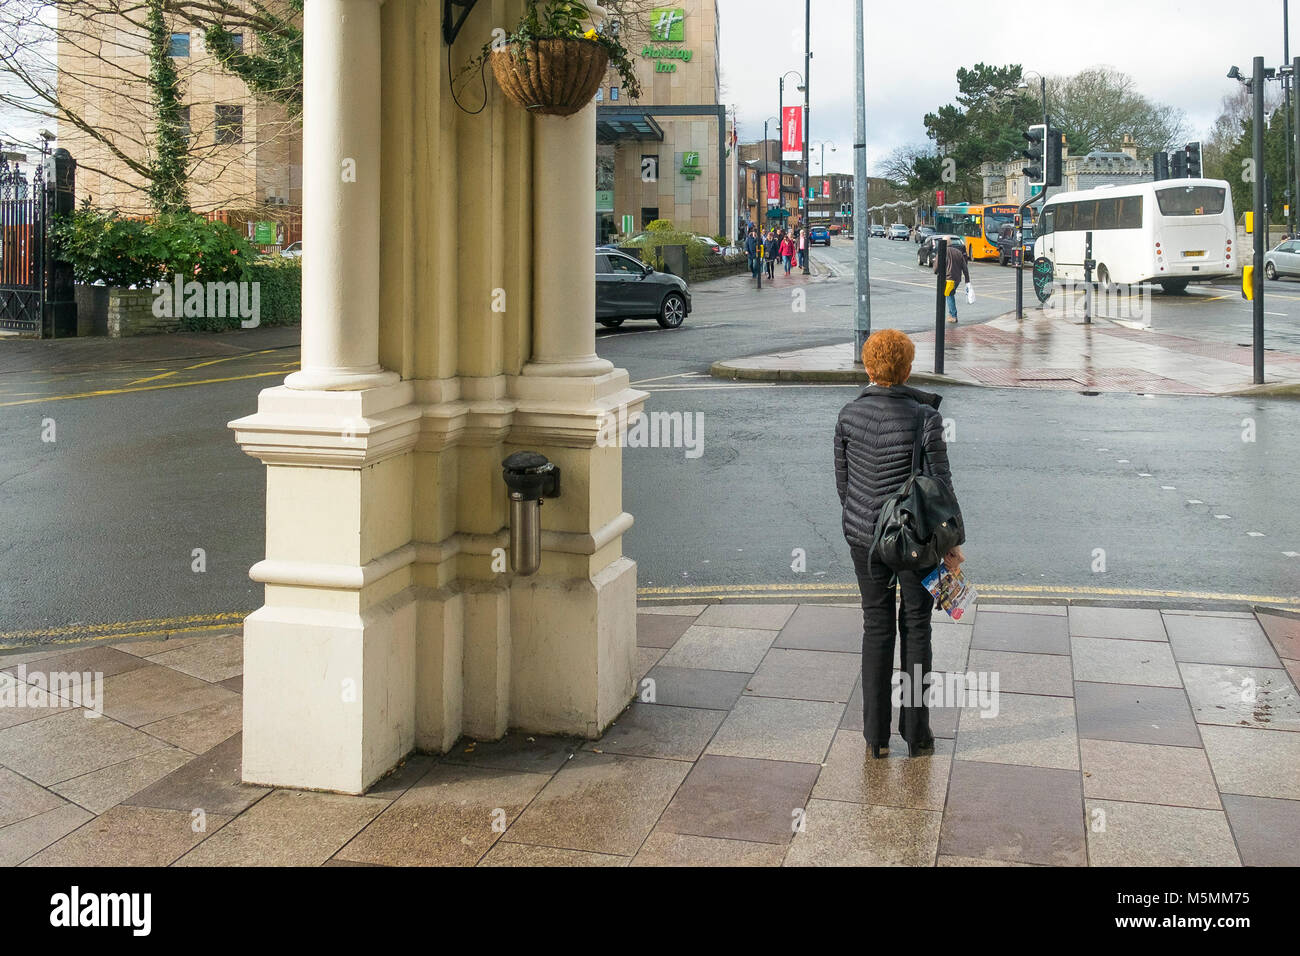 A woman standing under the portico of the Angel Hotel in Cardiff City Centre in Wales. - Stock Image